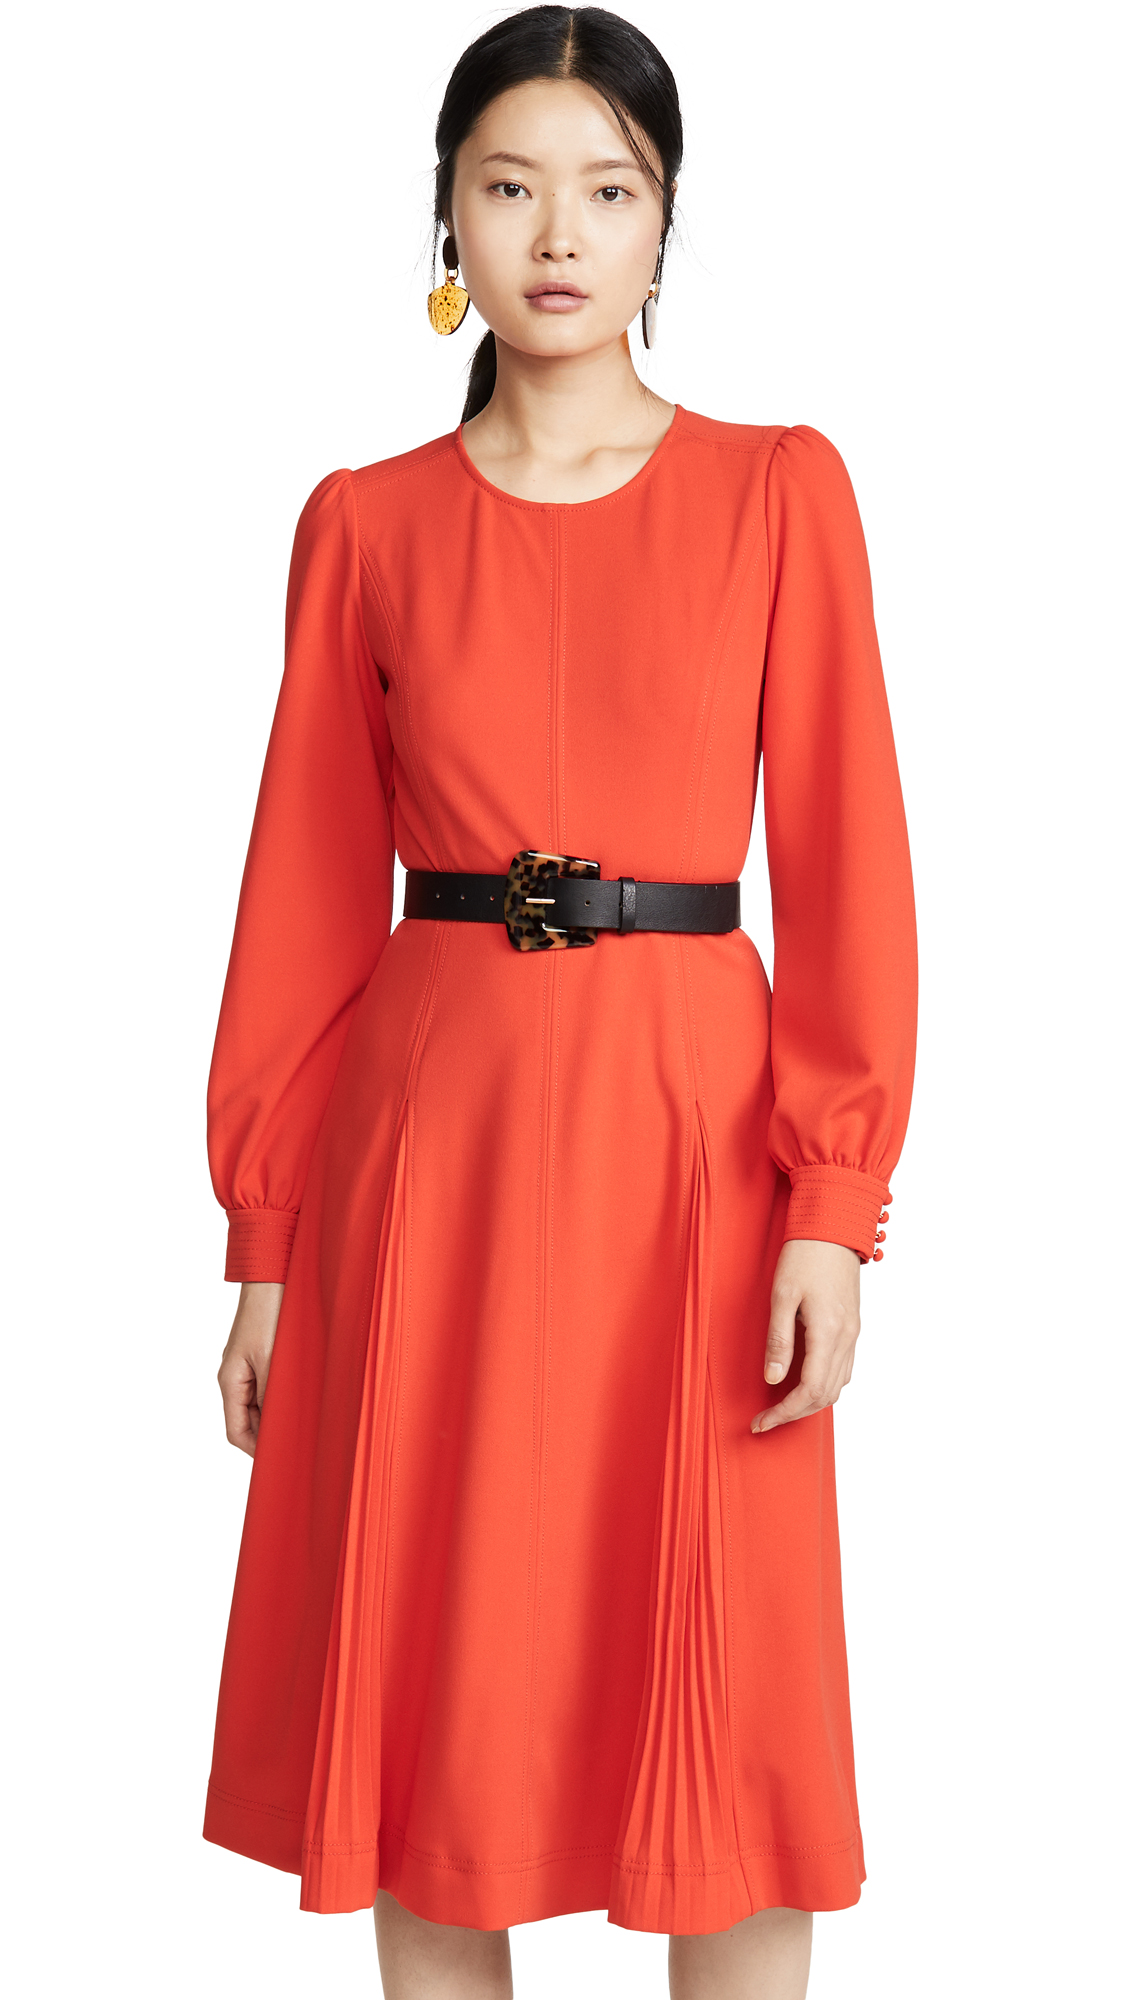 Tory Burch Knit Crepe Dress - 40% Off Sale